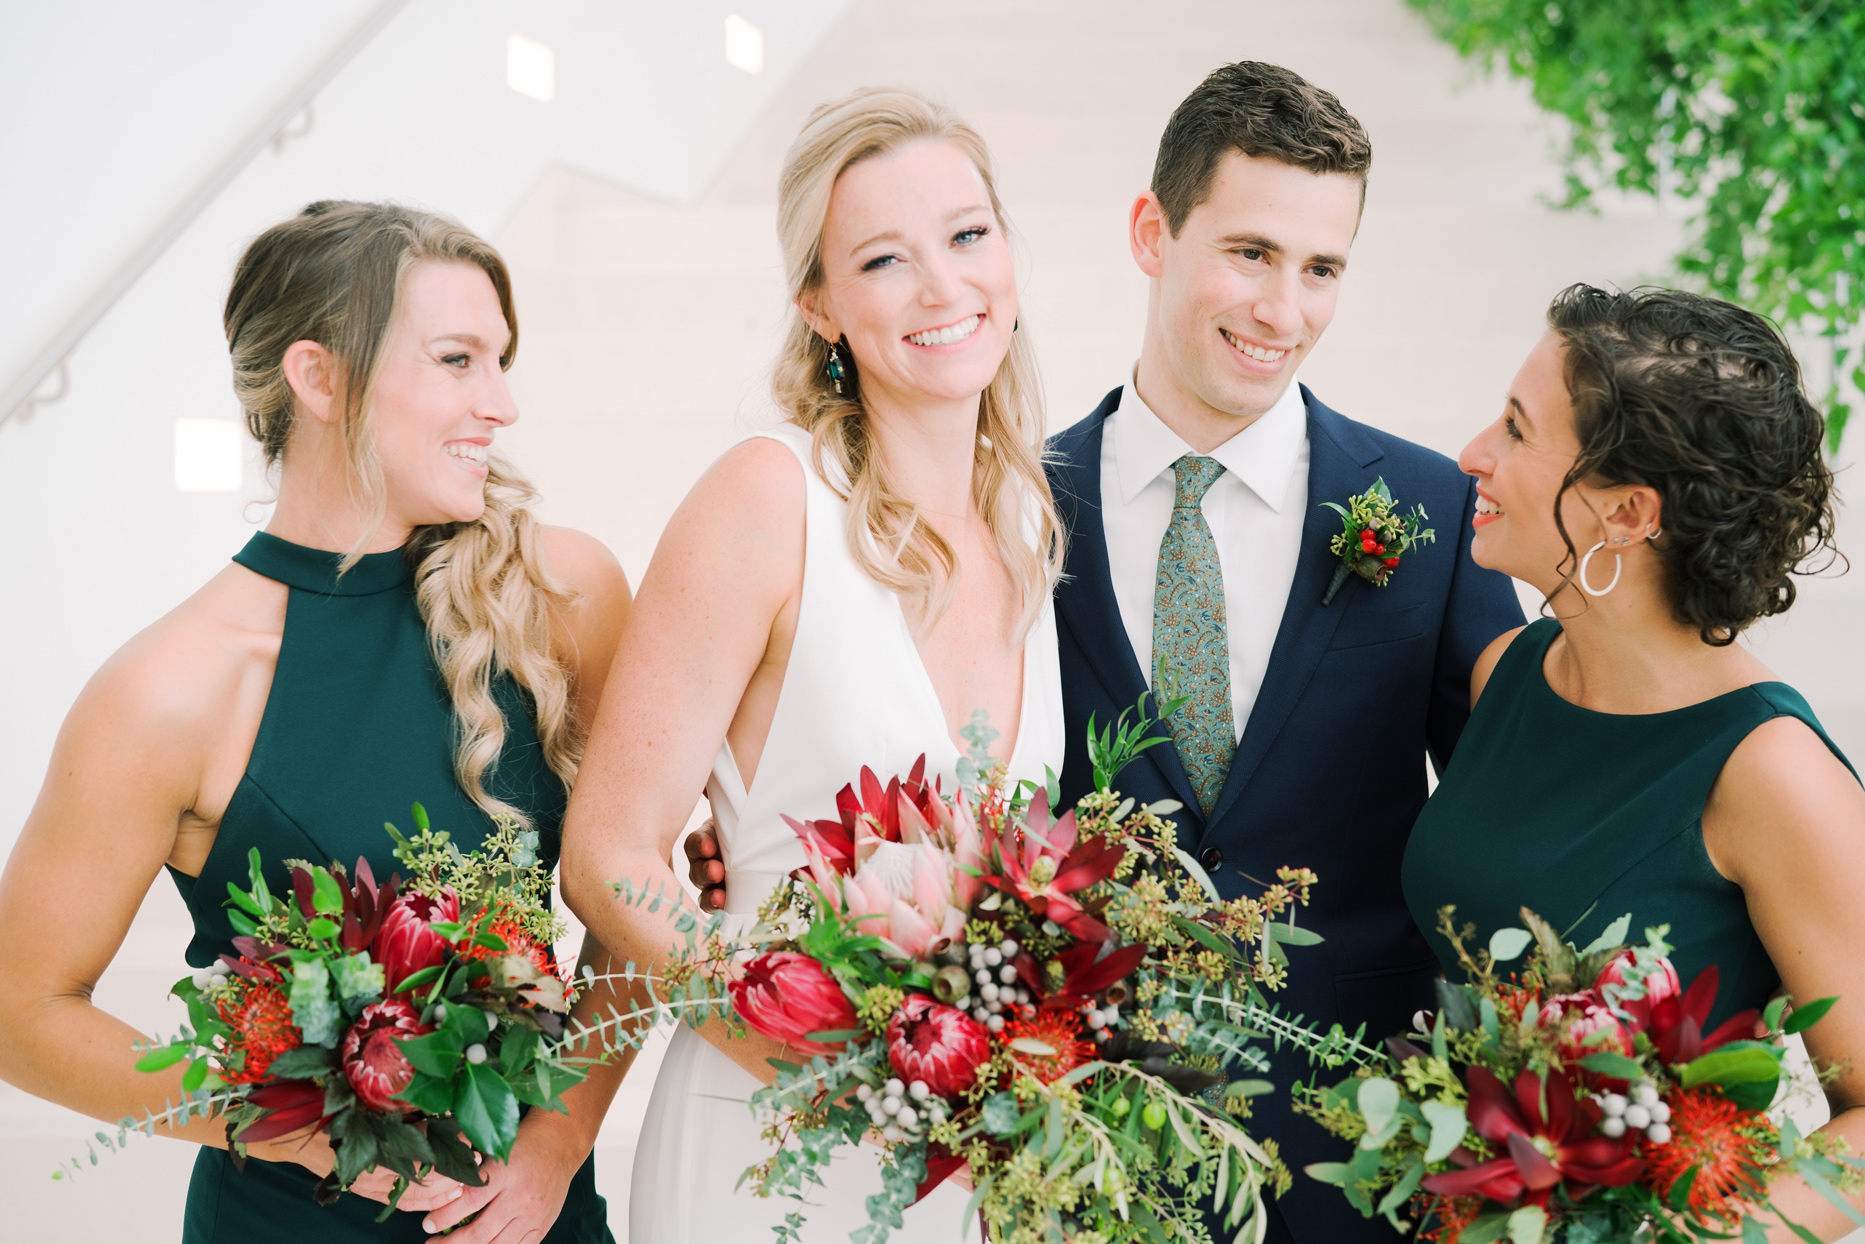 bride and groom with two bridesmaids wearing emerald green dresses